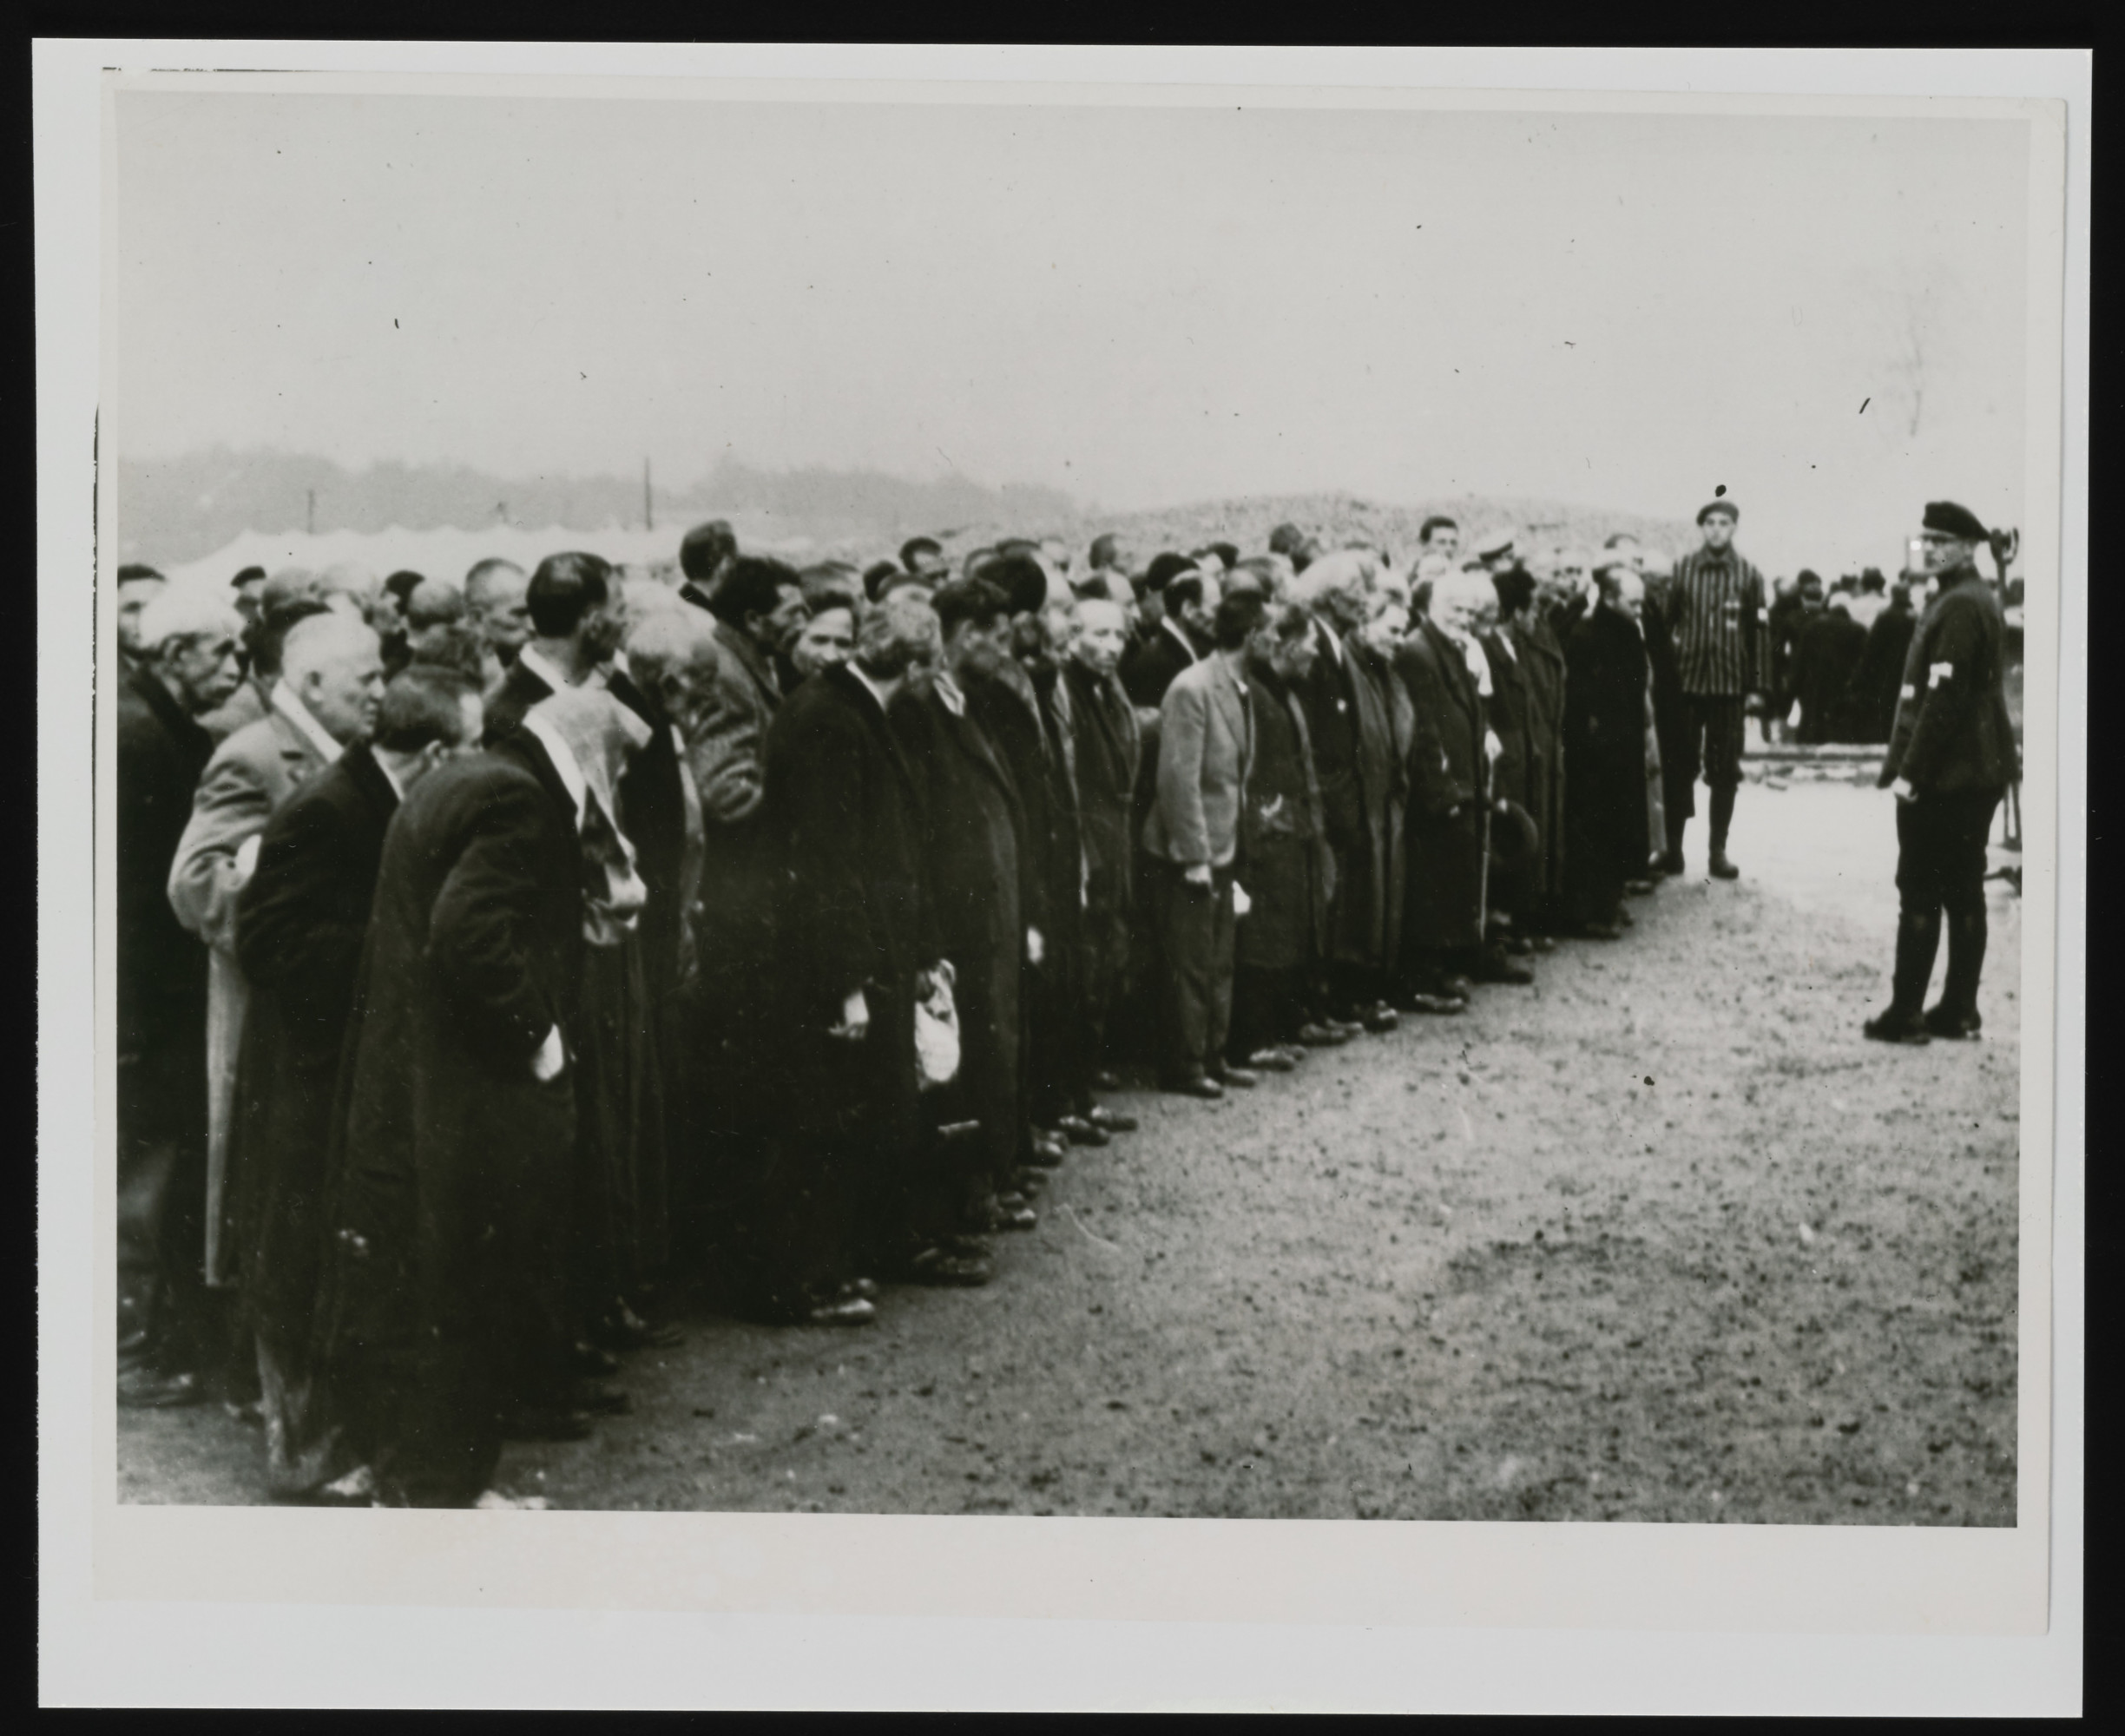 Newly arrived Polish prisoners lined up for registration in Buchenwald concentration camp.